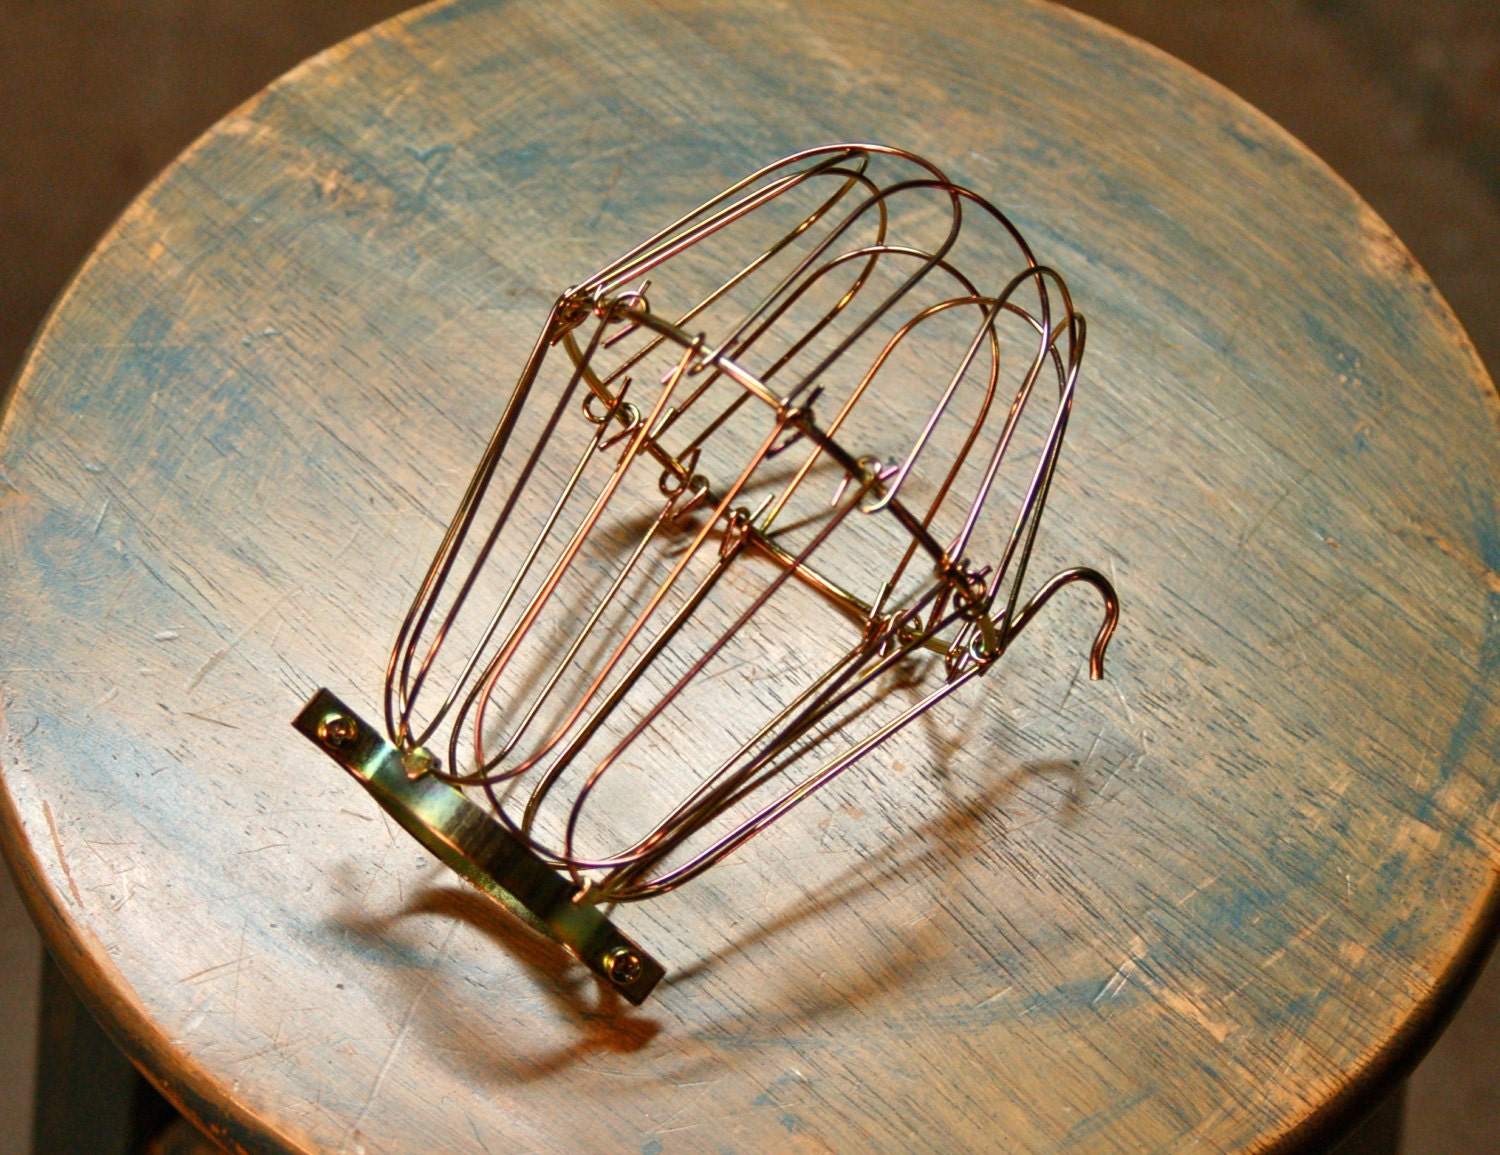 brass wire bulb cage clamp on lamp guard for vintage trouble. Black Bedroom Furniture Sets. Home Design Ideas